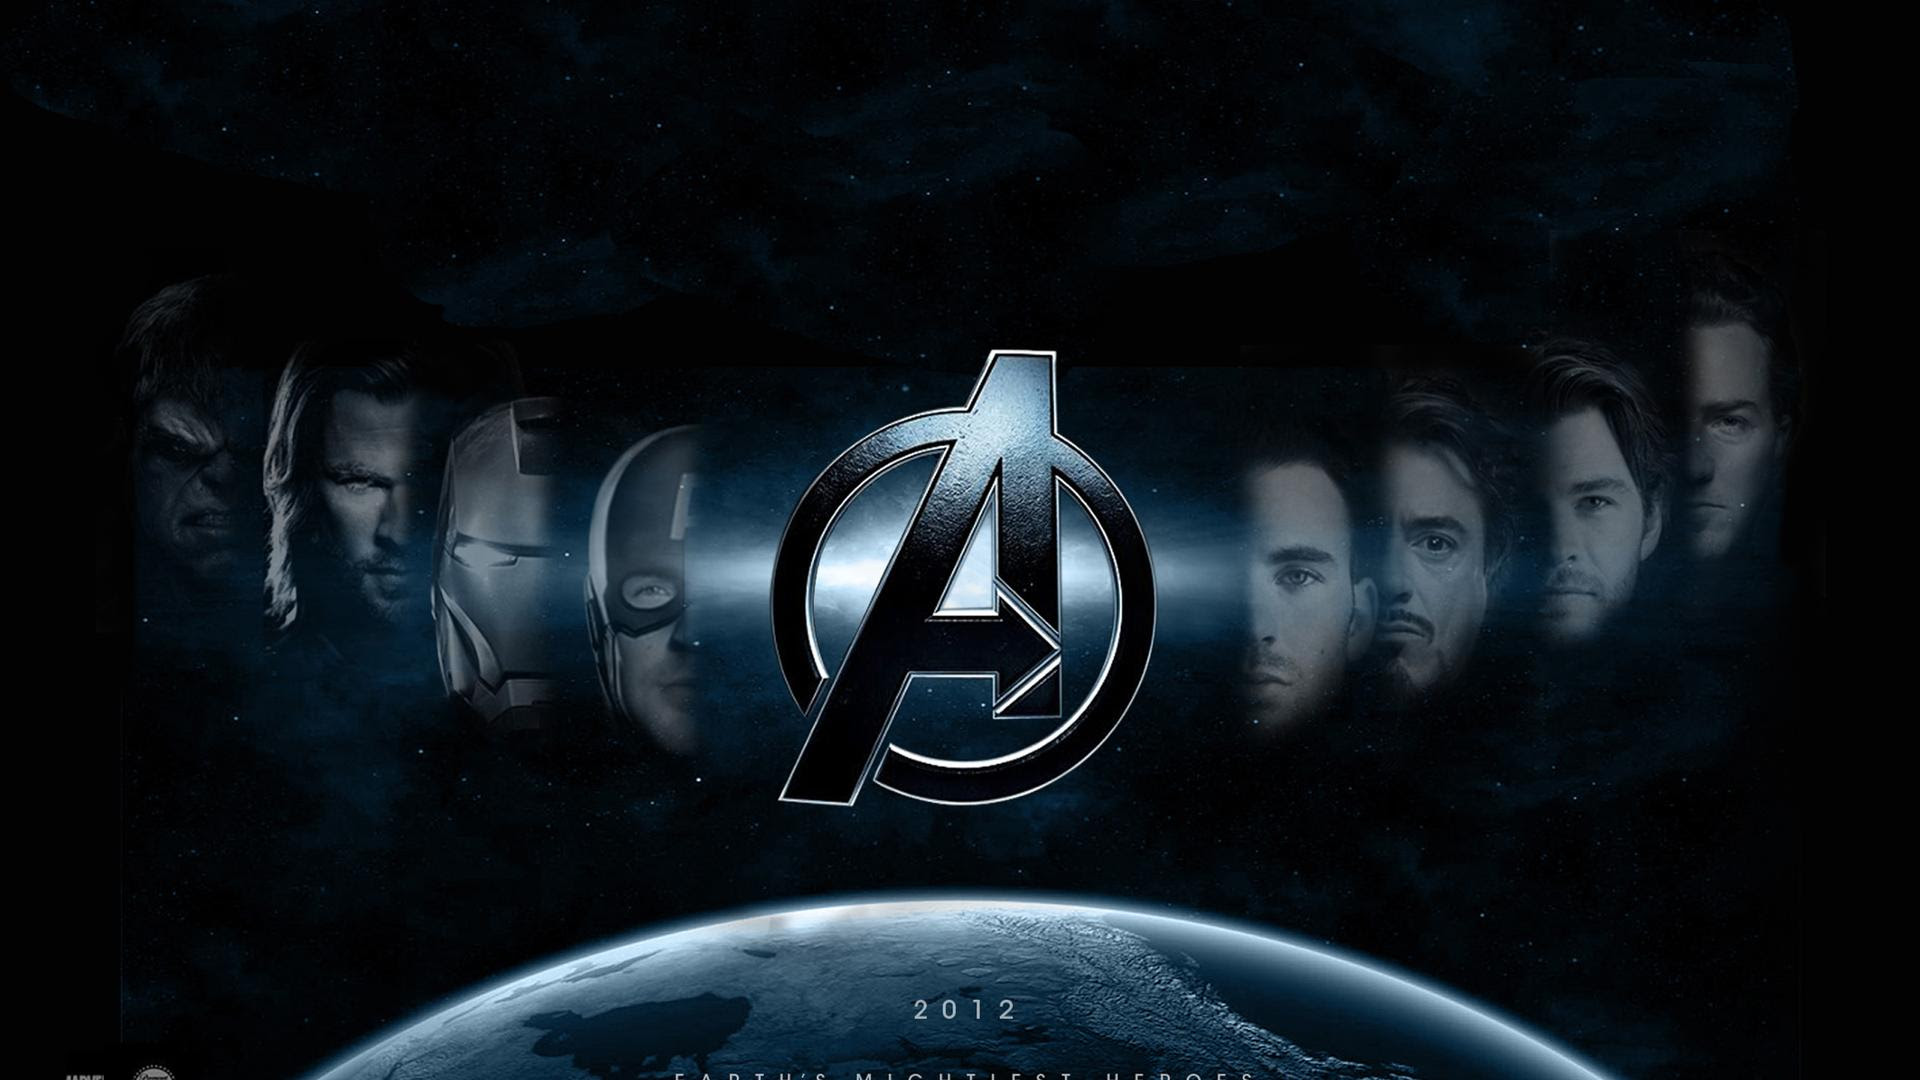 Avengers Logo Wallpaper Hd For Mobile